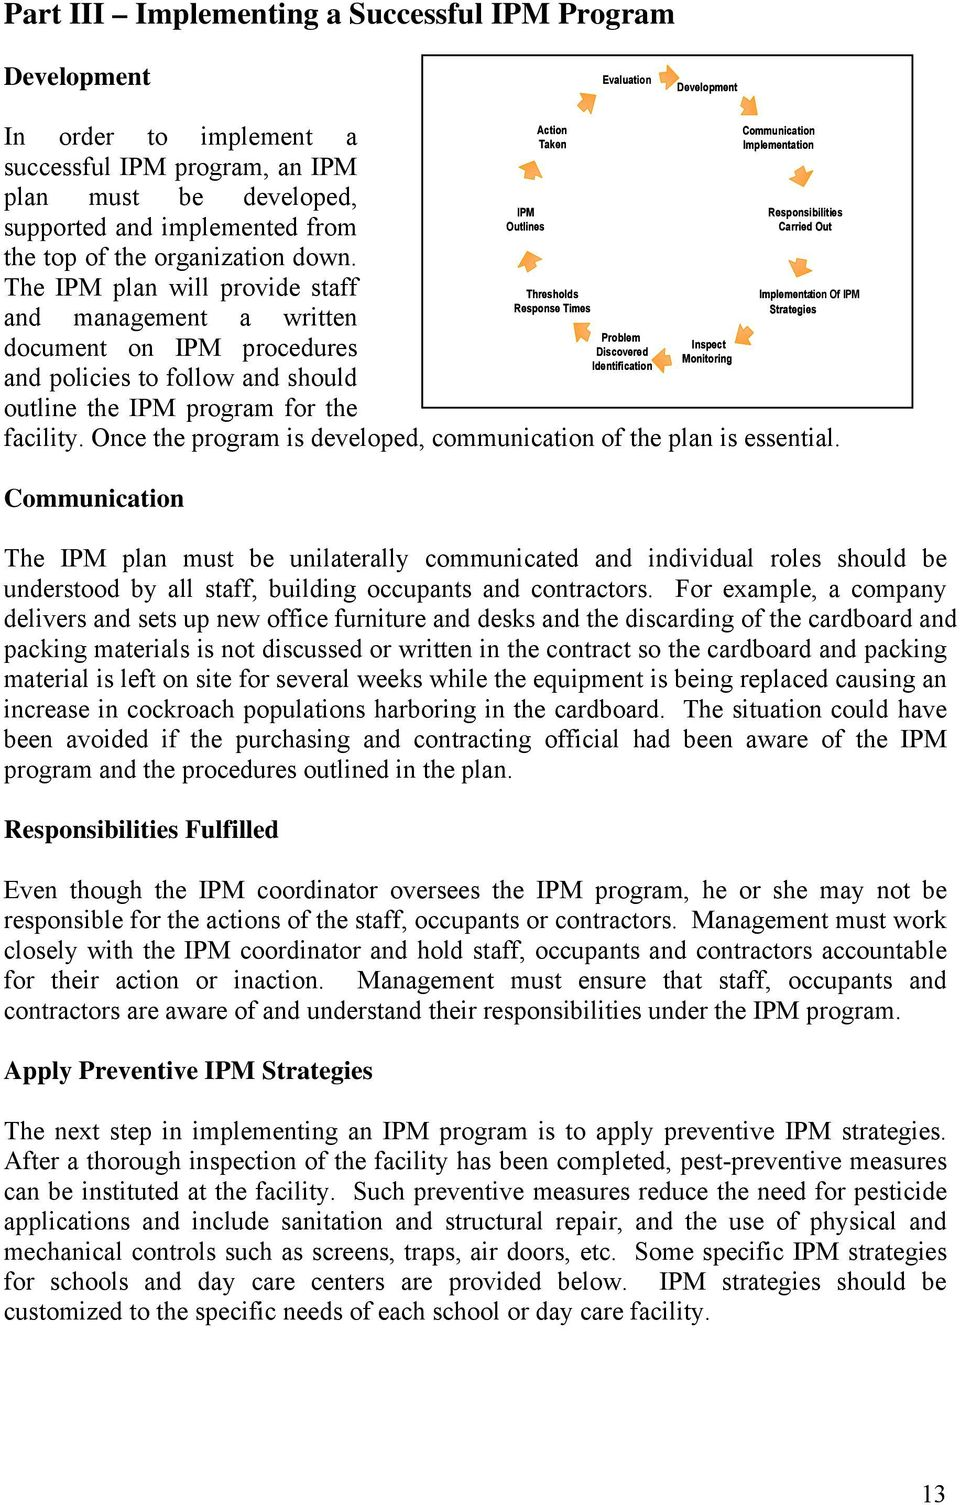 The IPM plan will provide staff Thresholds Implementa Response Times Strategies and management a written Problem Inspect document on IPM procedures Discovered Monitoring Identification and policies